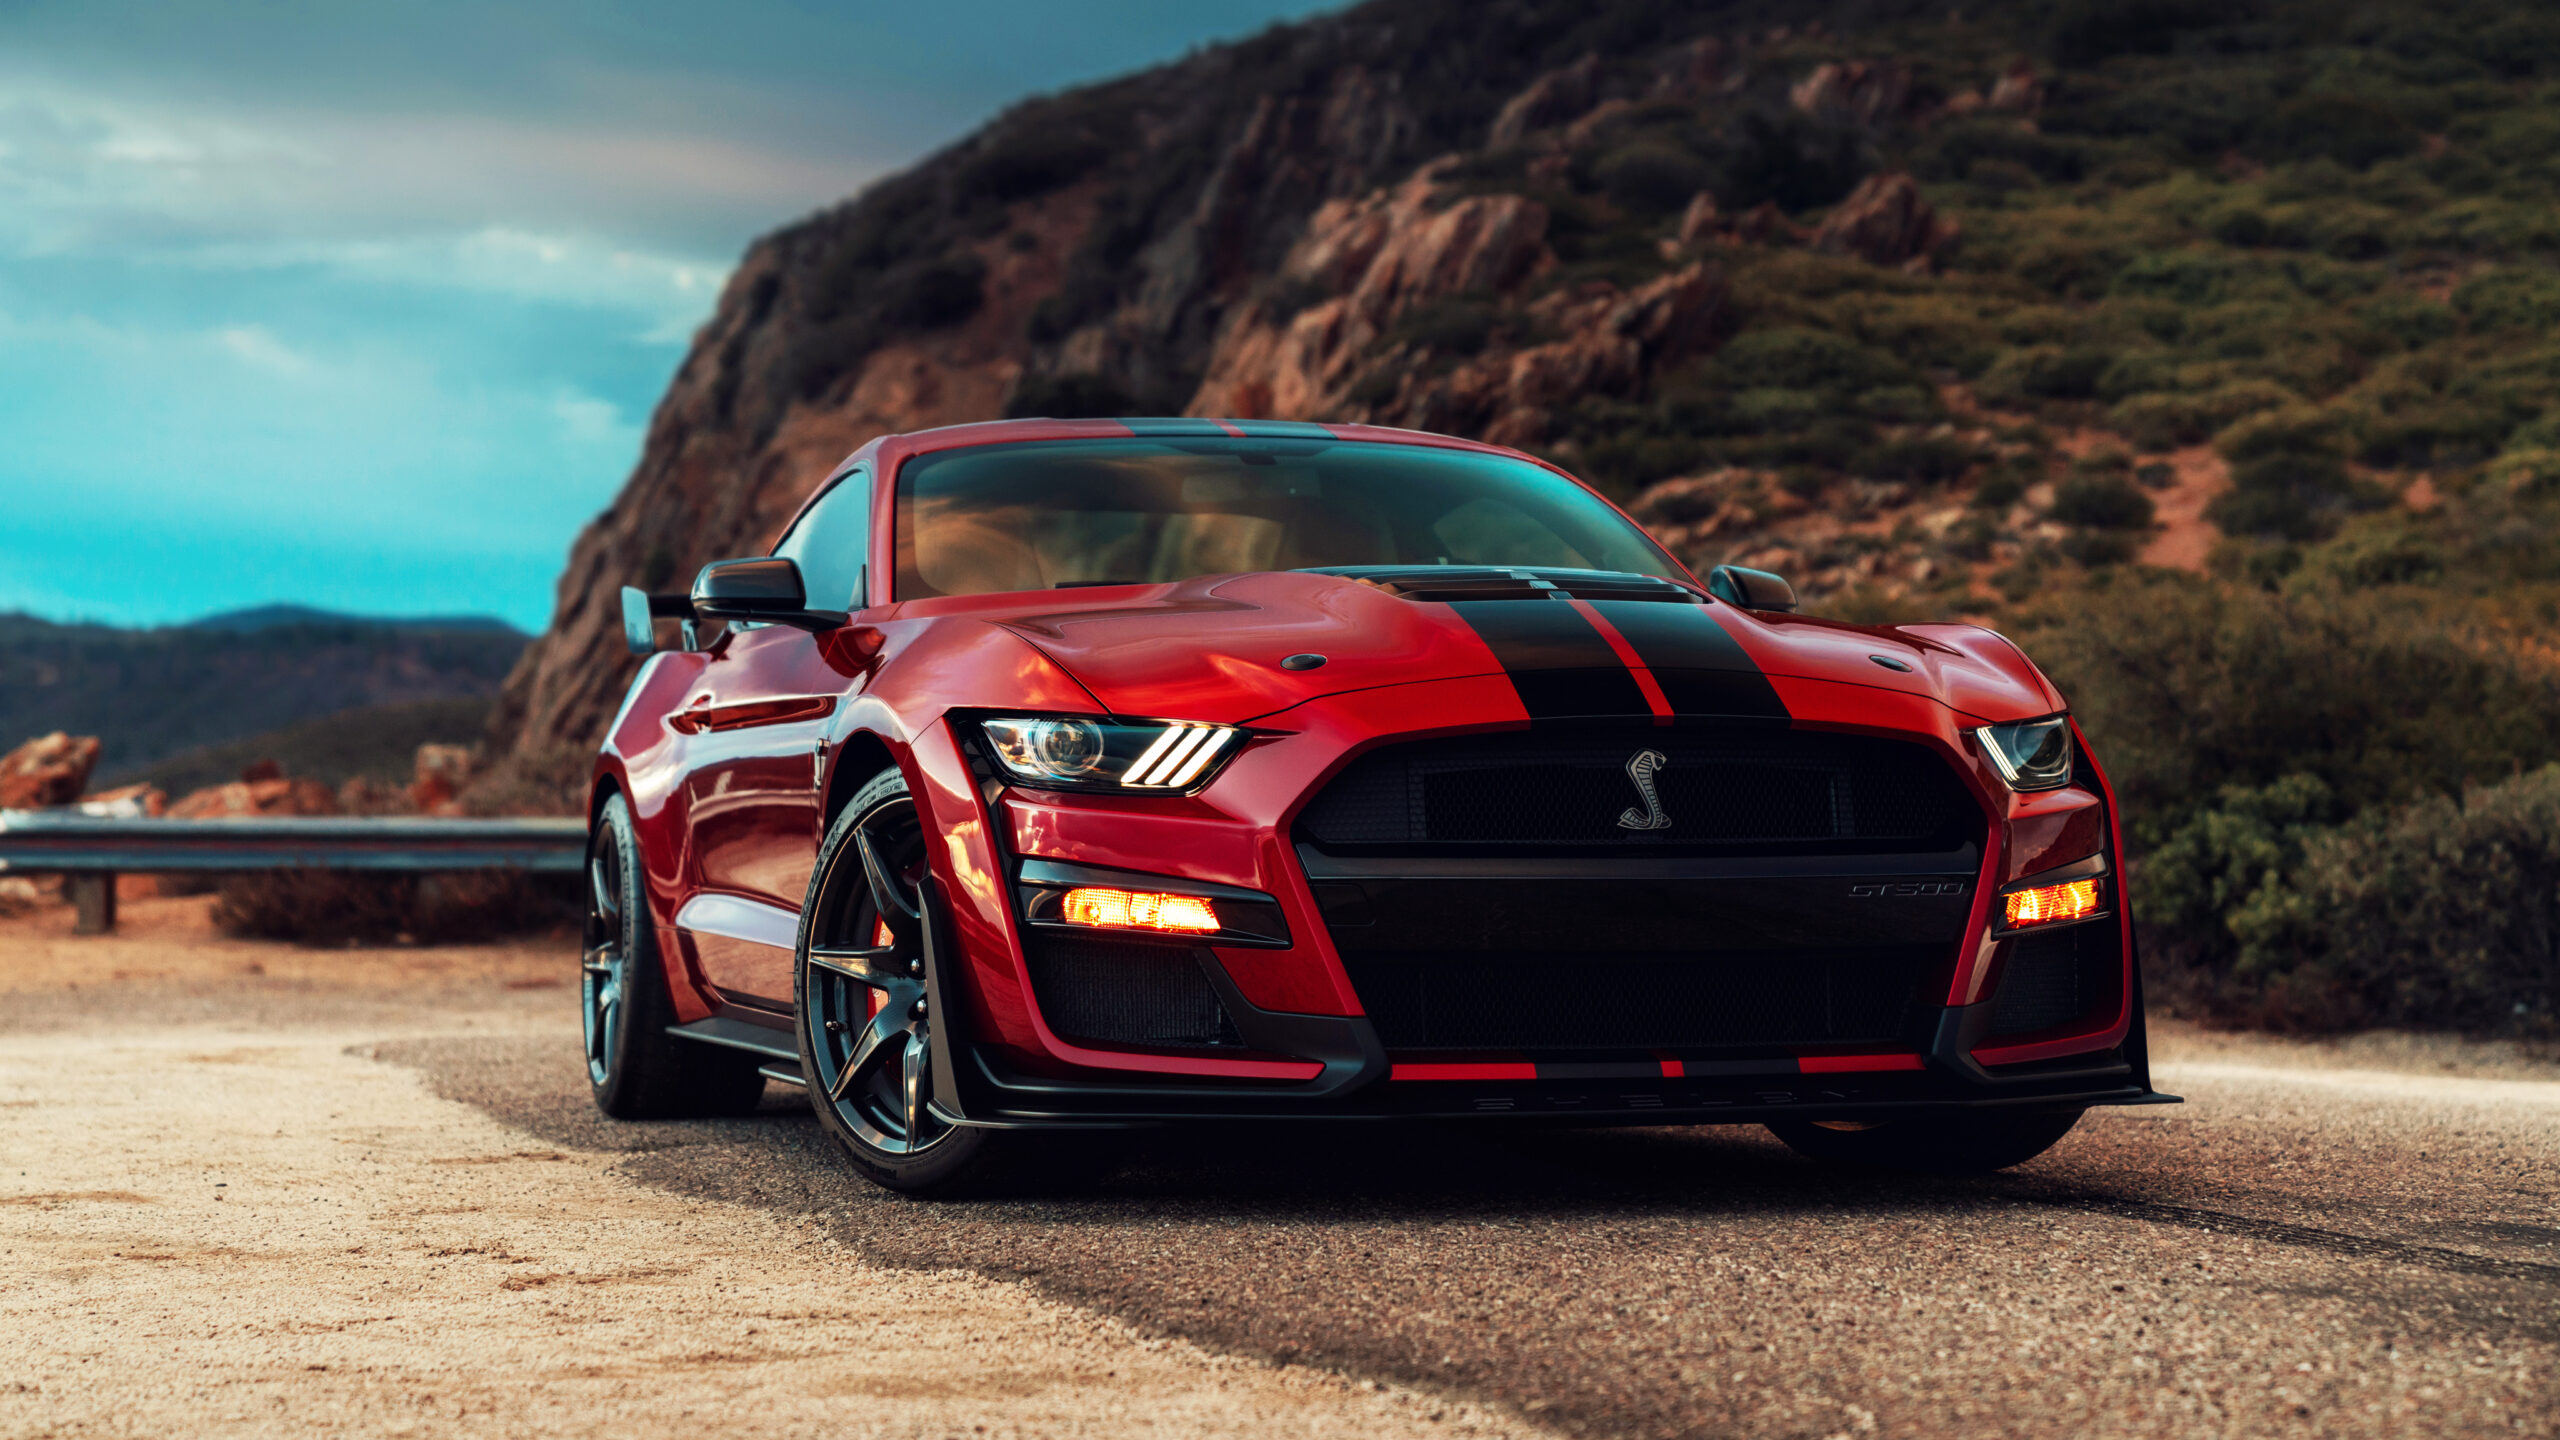 Ford Updates The Mustang And Shelby Gt500 For 2021 Model Year Ford Mustang Supercars Net